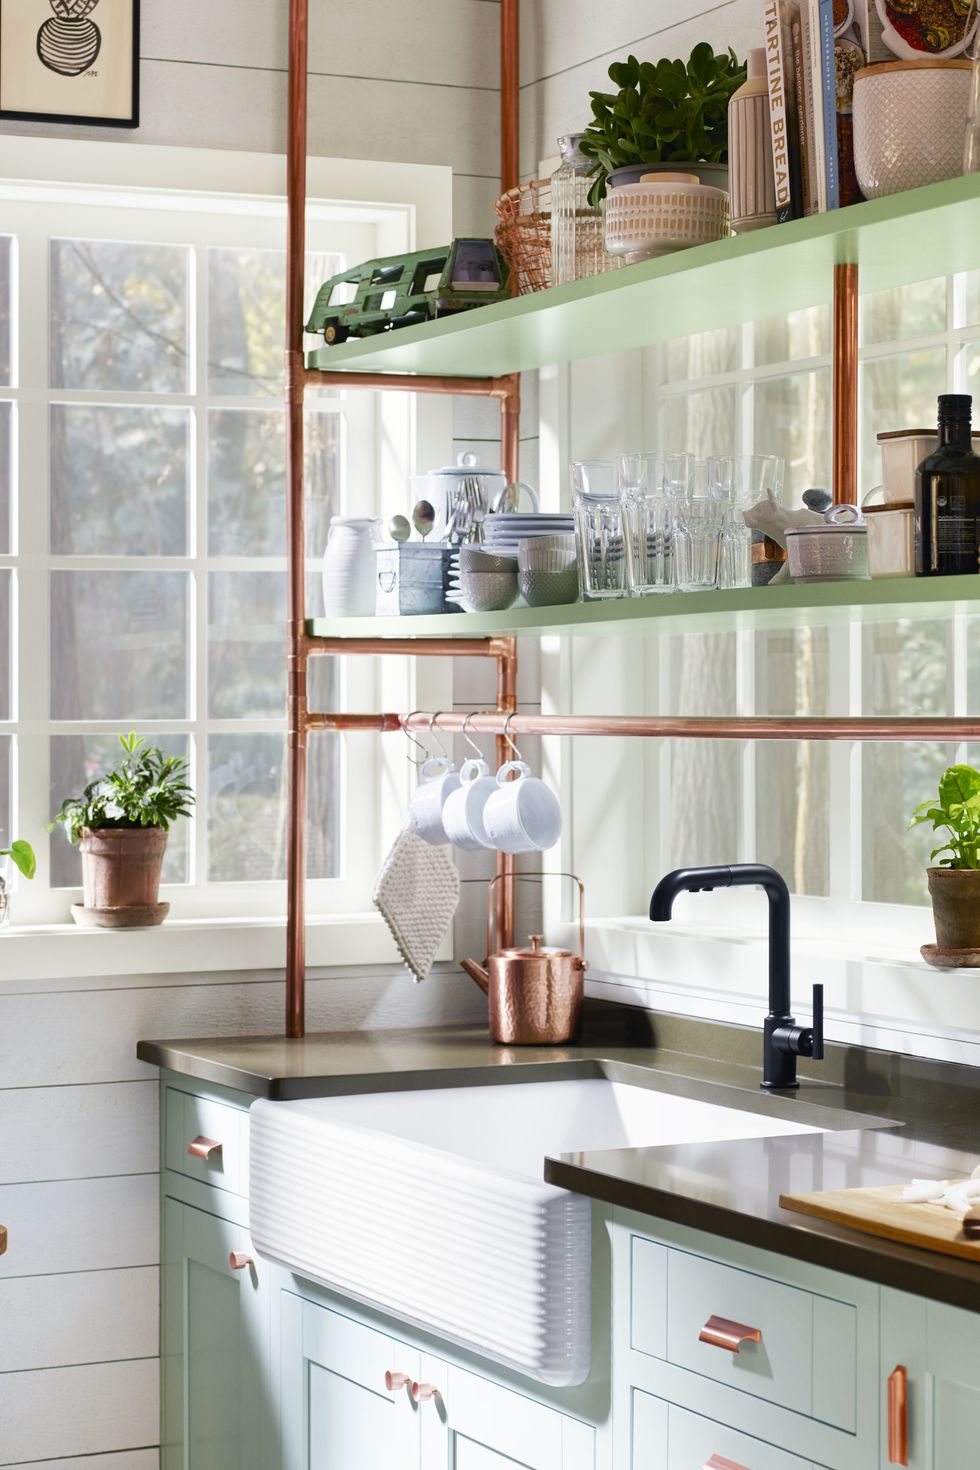 Kitchen decorating ideas for countertops with copper tubing shelves and cups